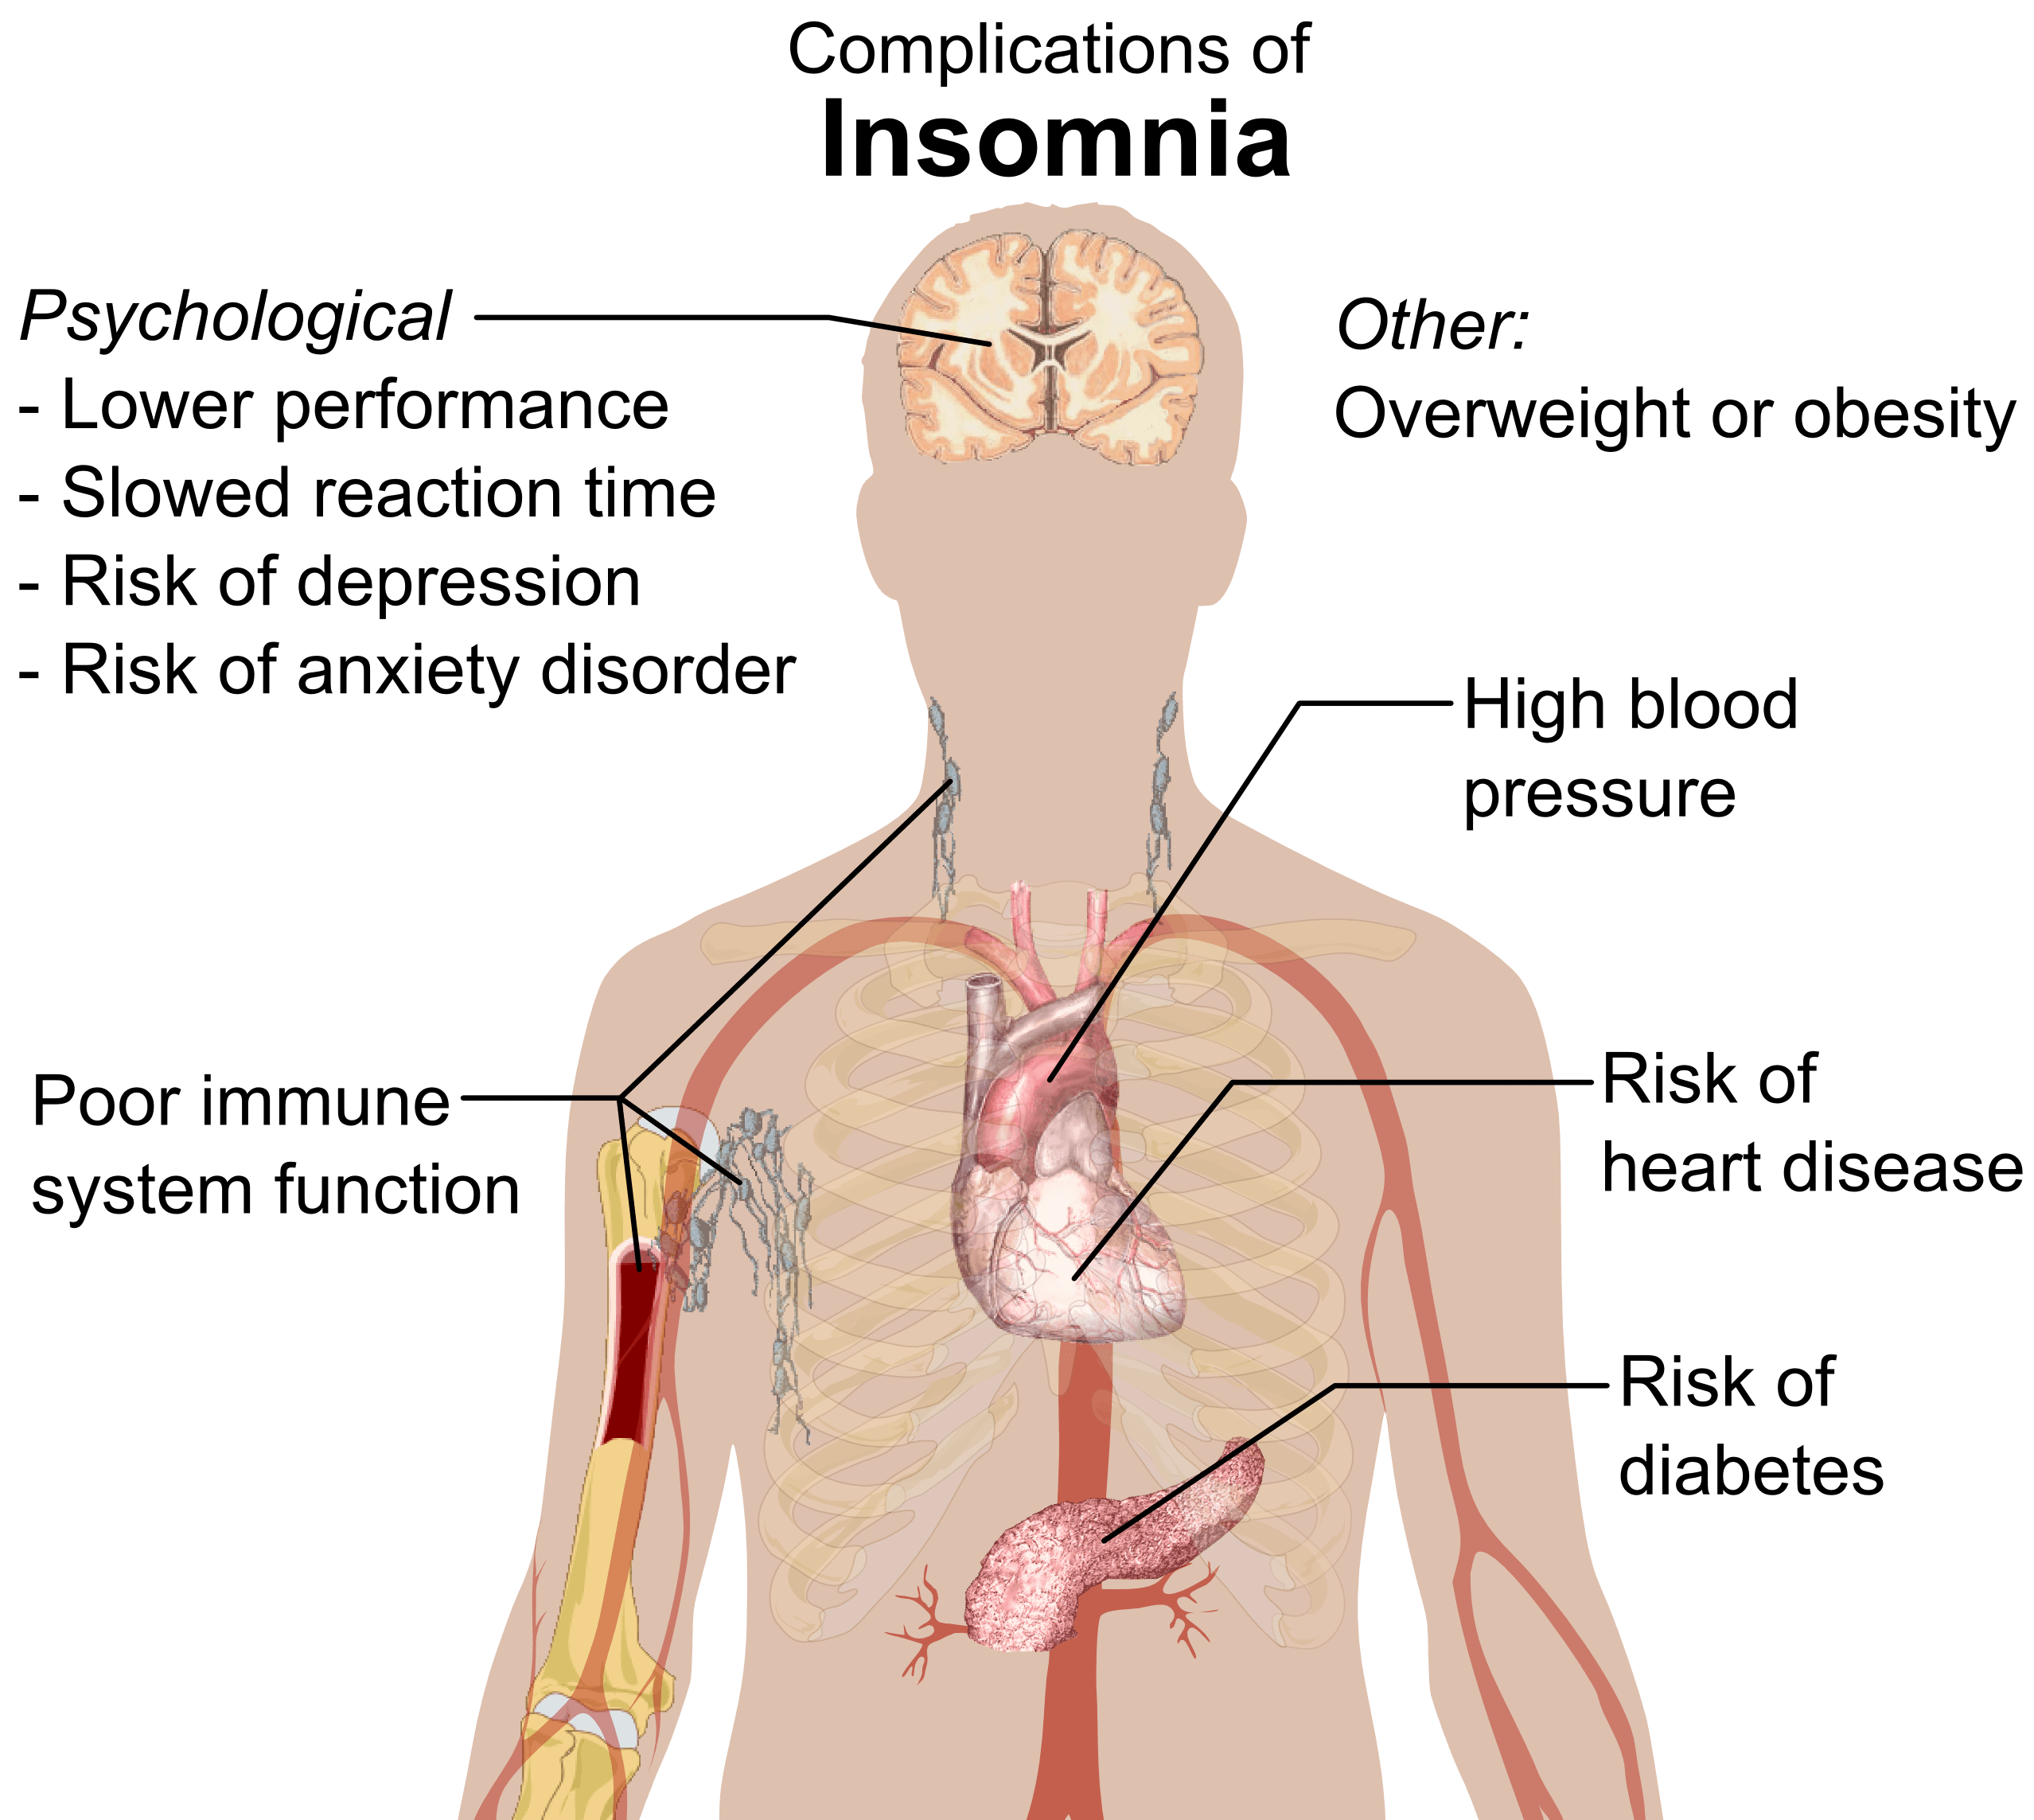 You will never look at Insomnia the same again